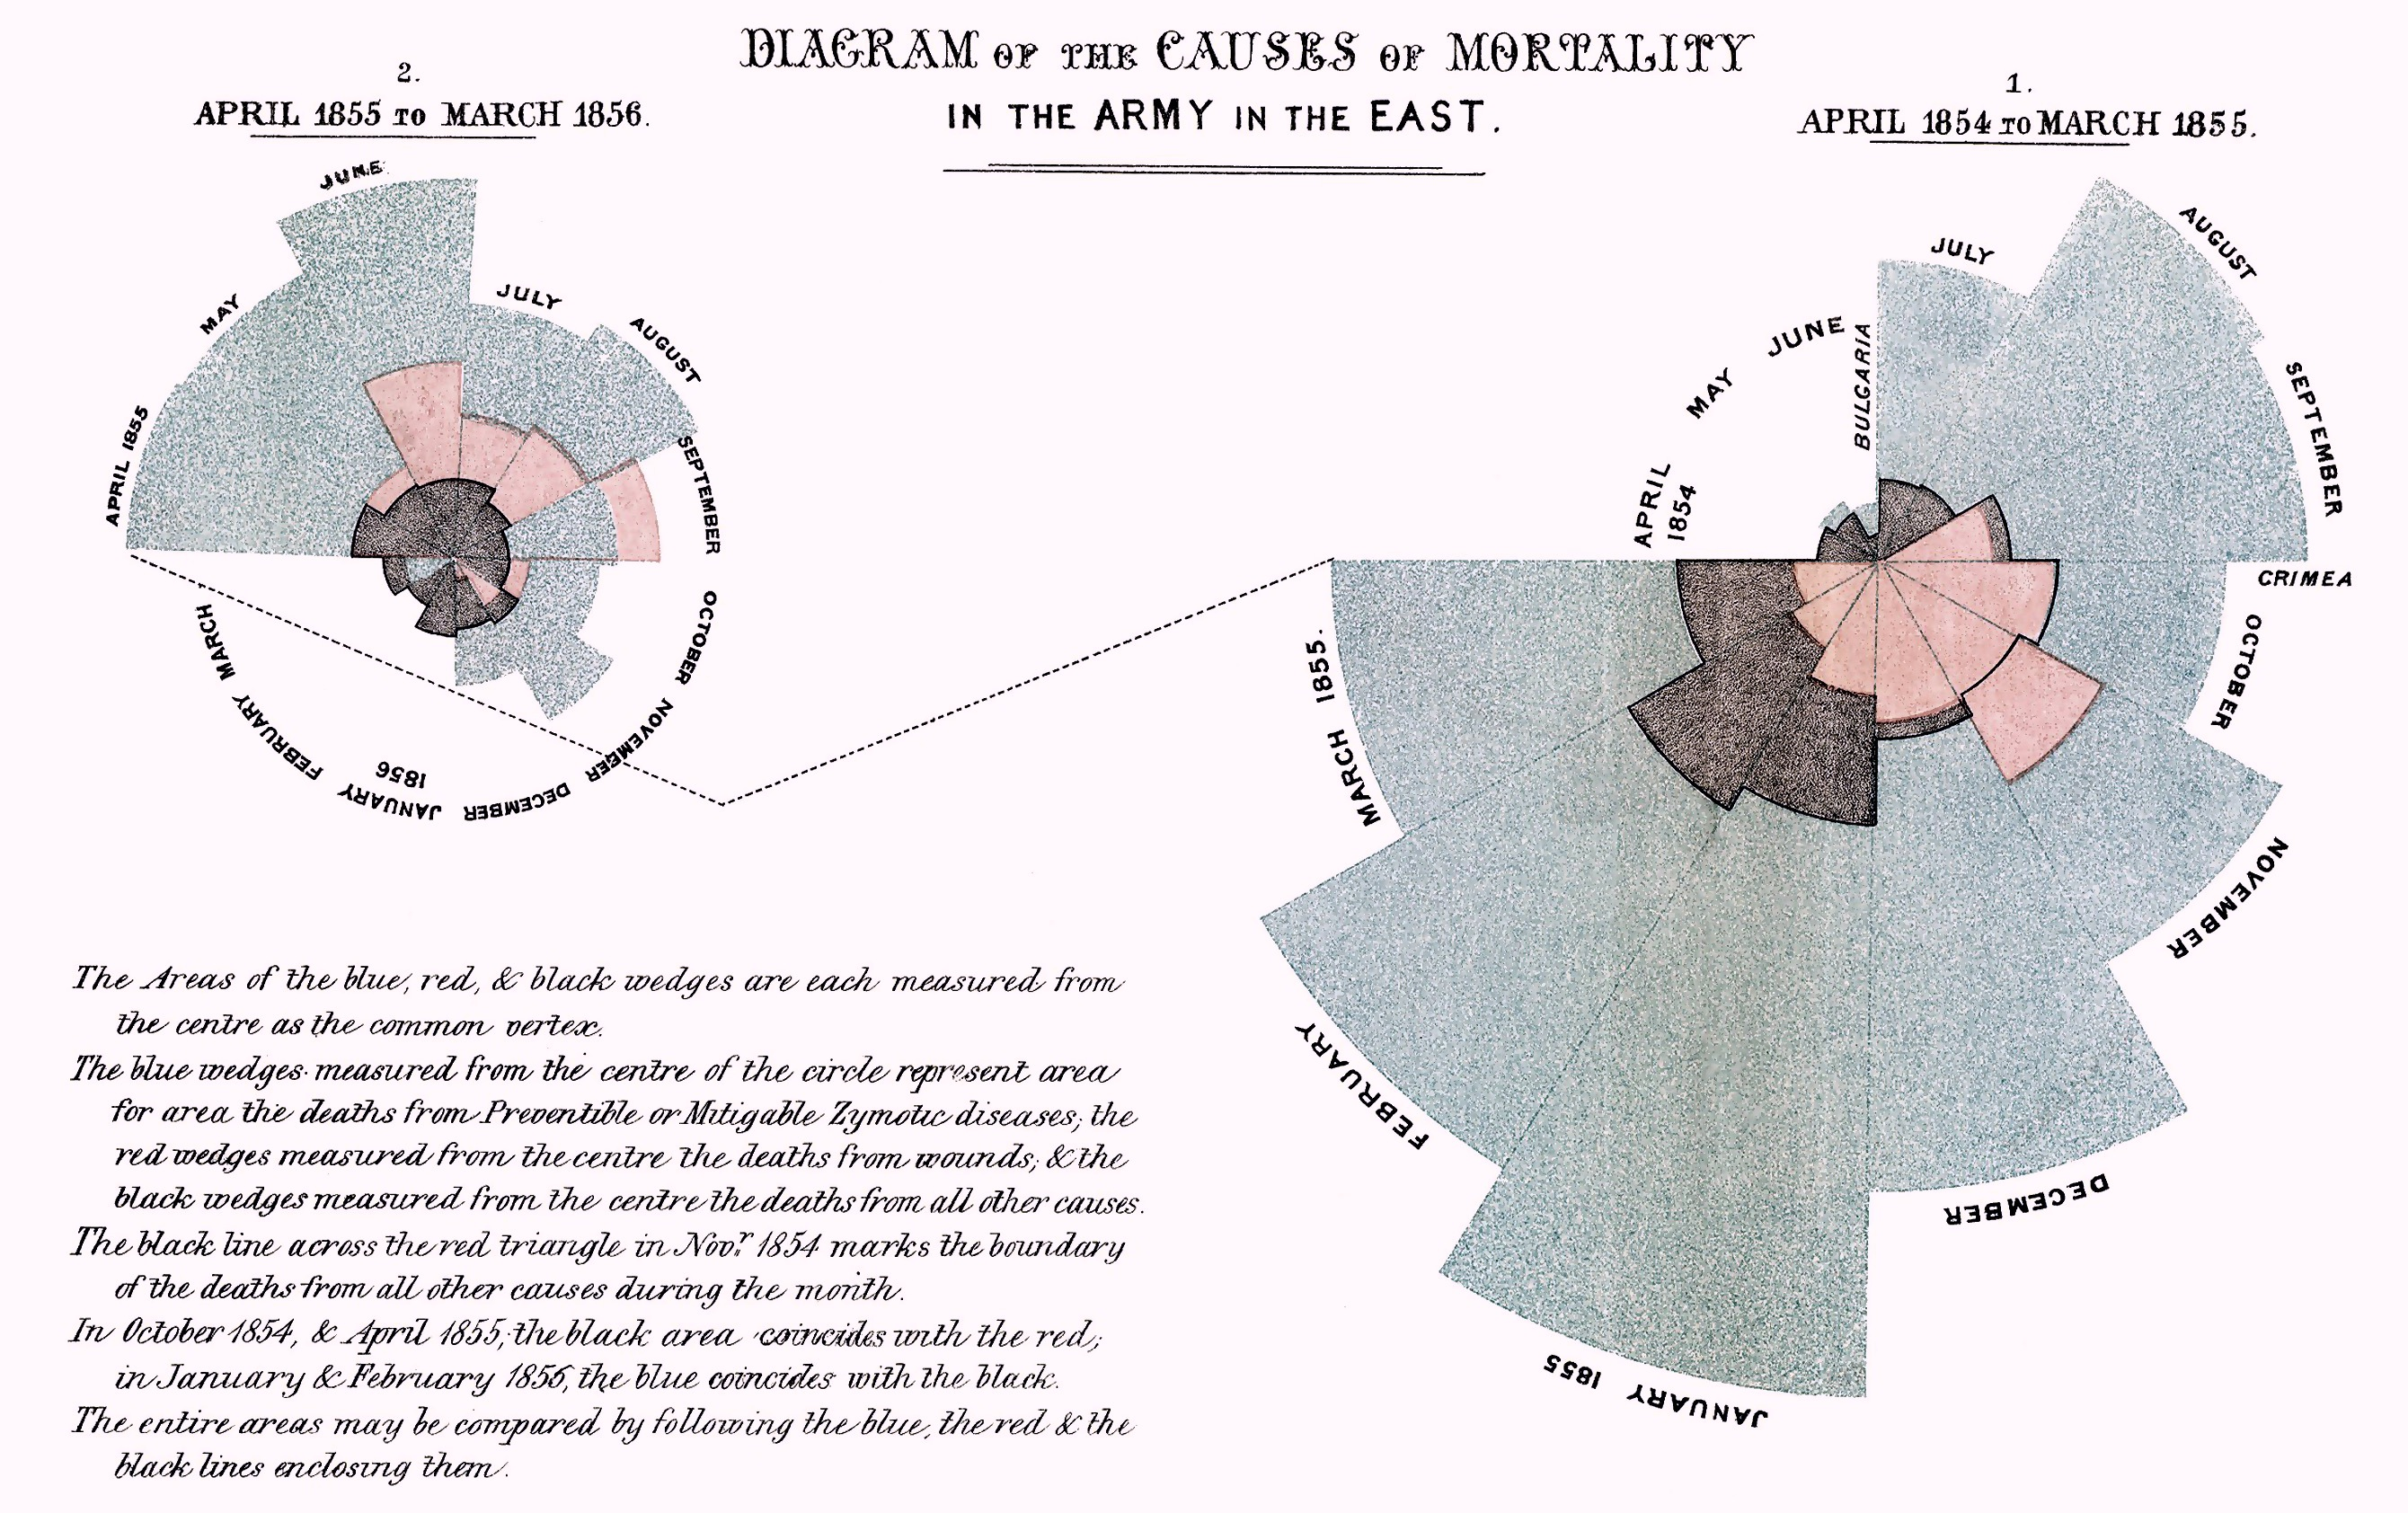 Florence Nightingale's 1858 diagram of the causes of mortality in the army (source: Wikipedia). She's credited with developing the polar area diagram chart.